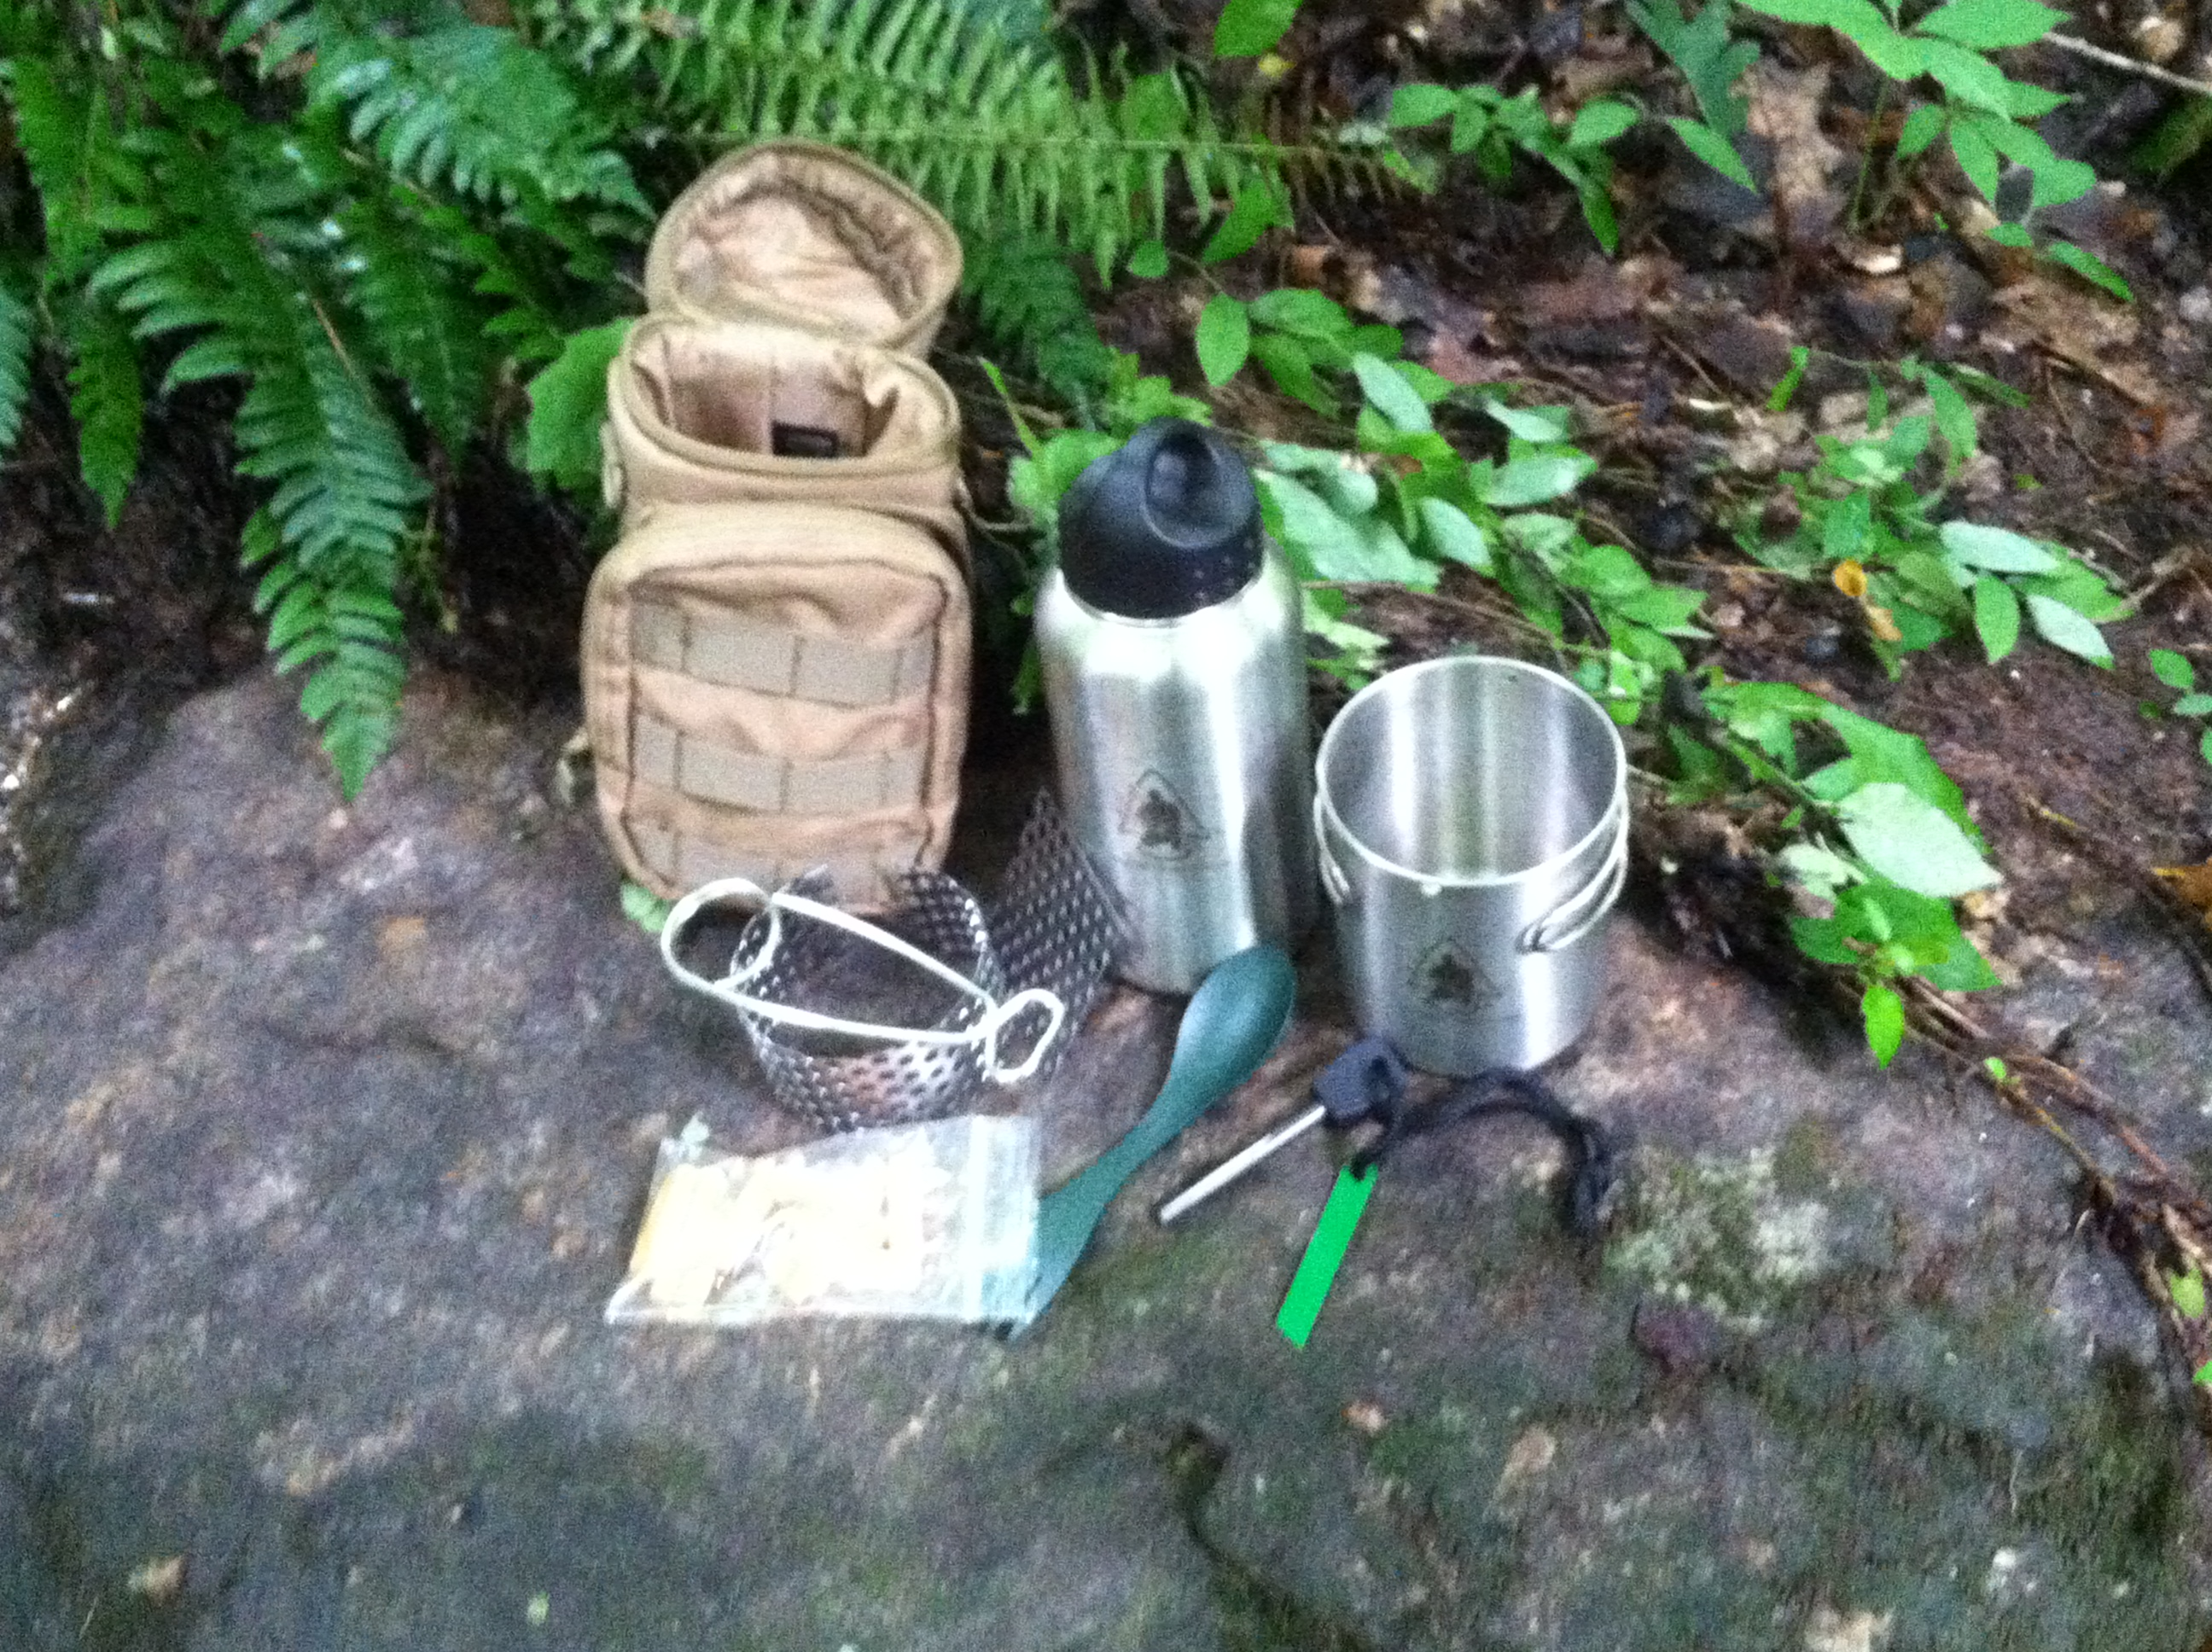 Camping Items For Each Letter Of The Alphabet